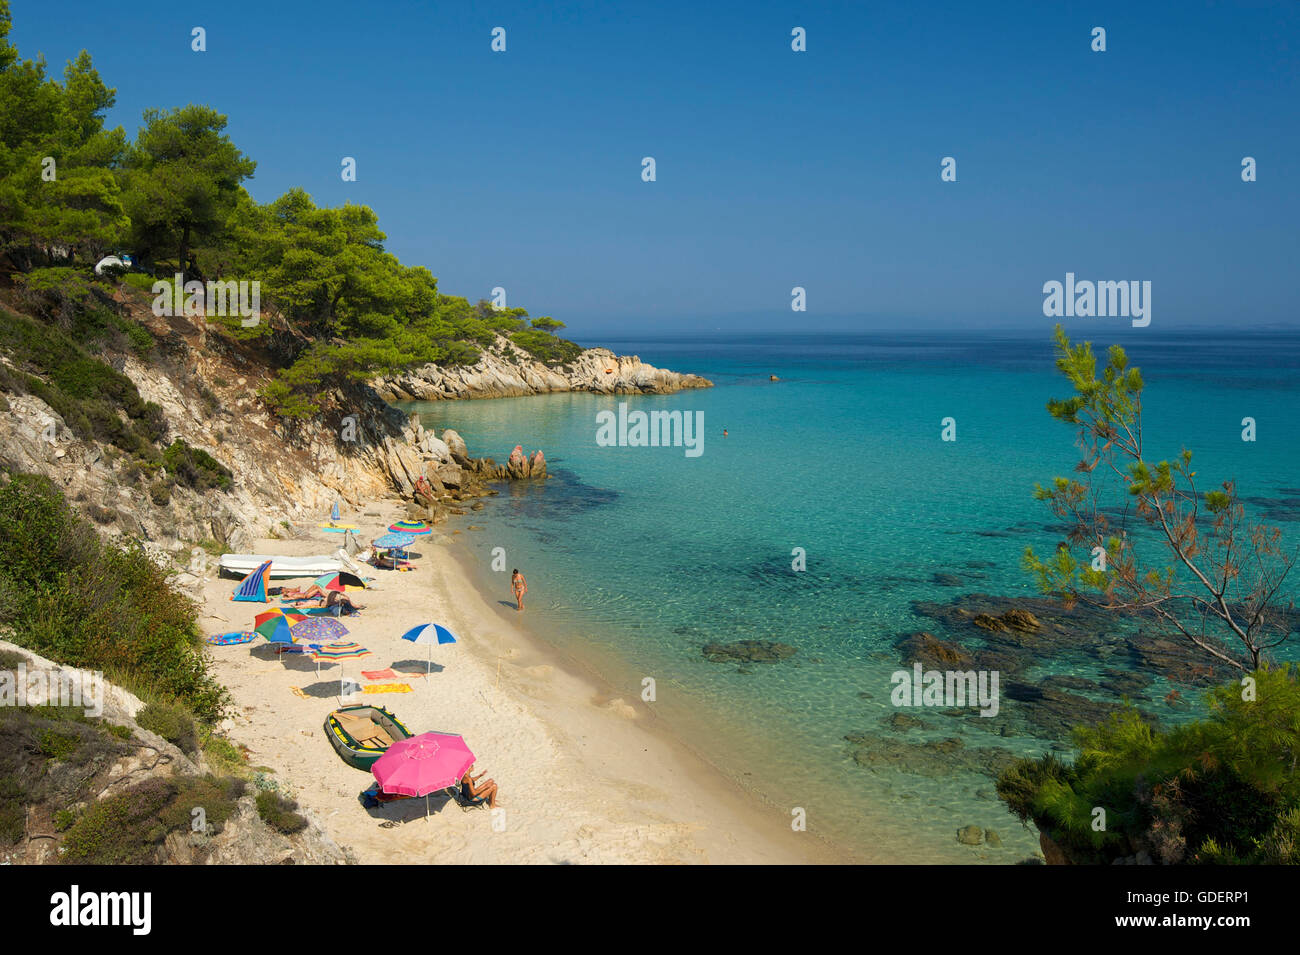 Kavourotypes Beach, Sithonia, Chalkidiki, Halkidiki, Greece Stock Photo